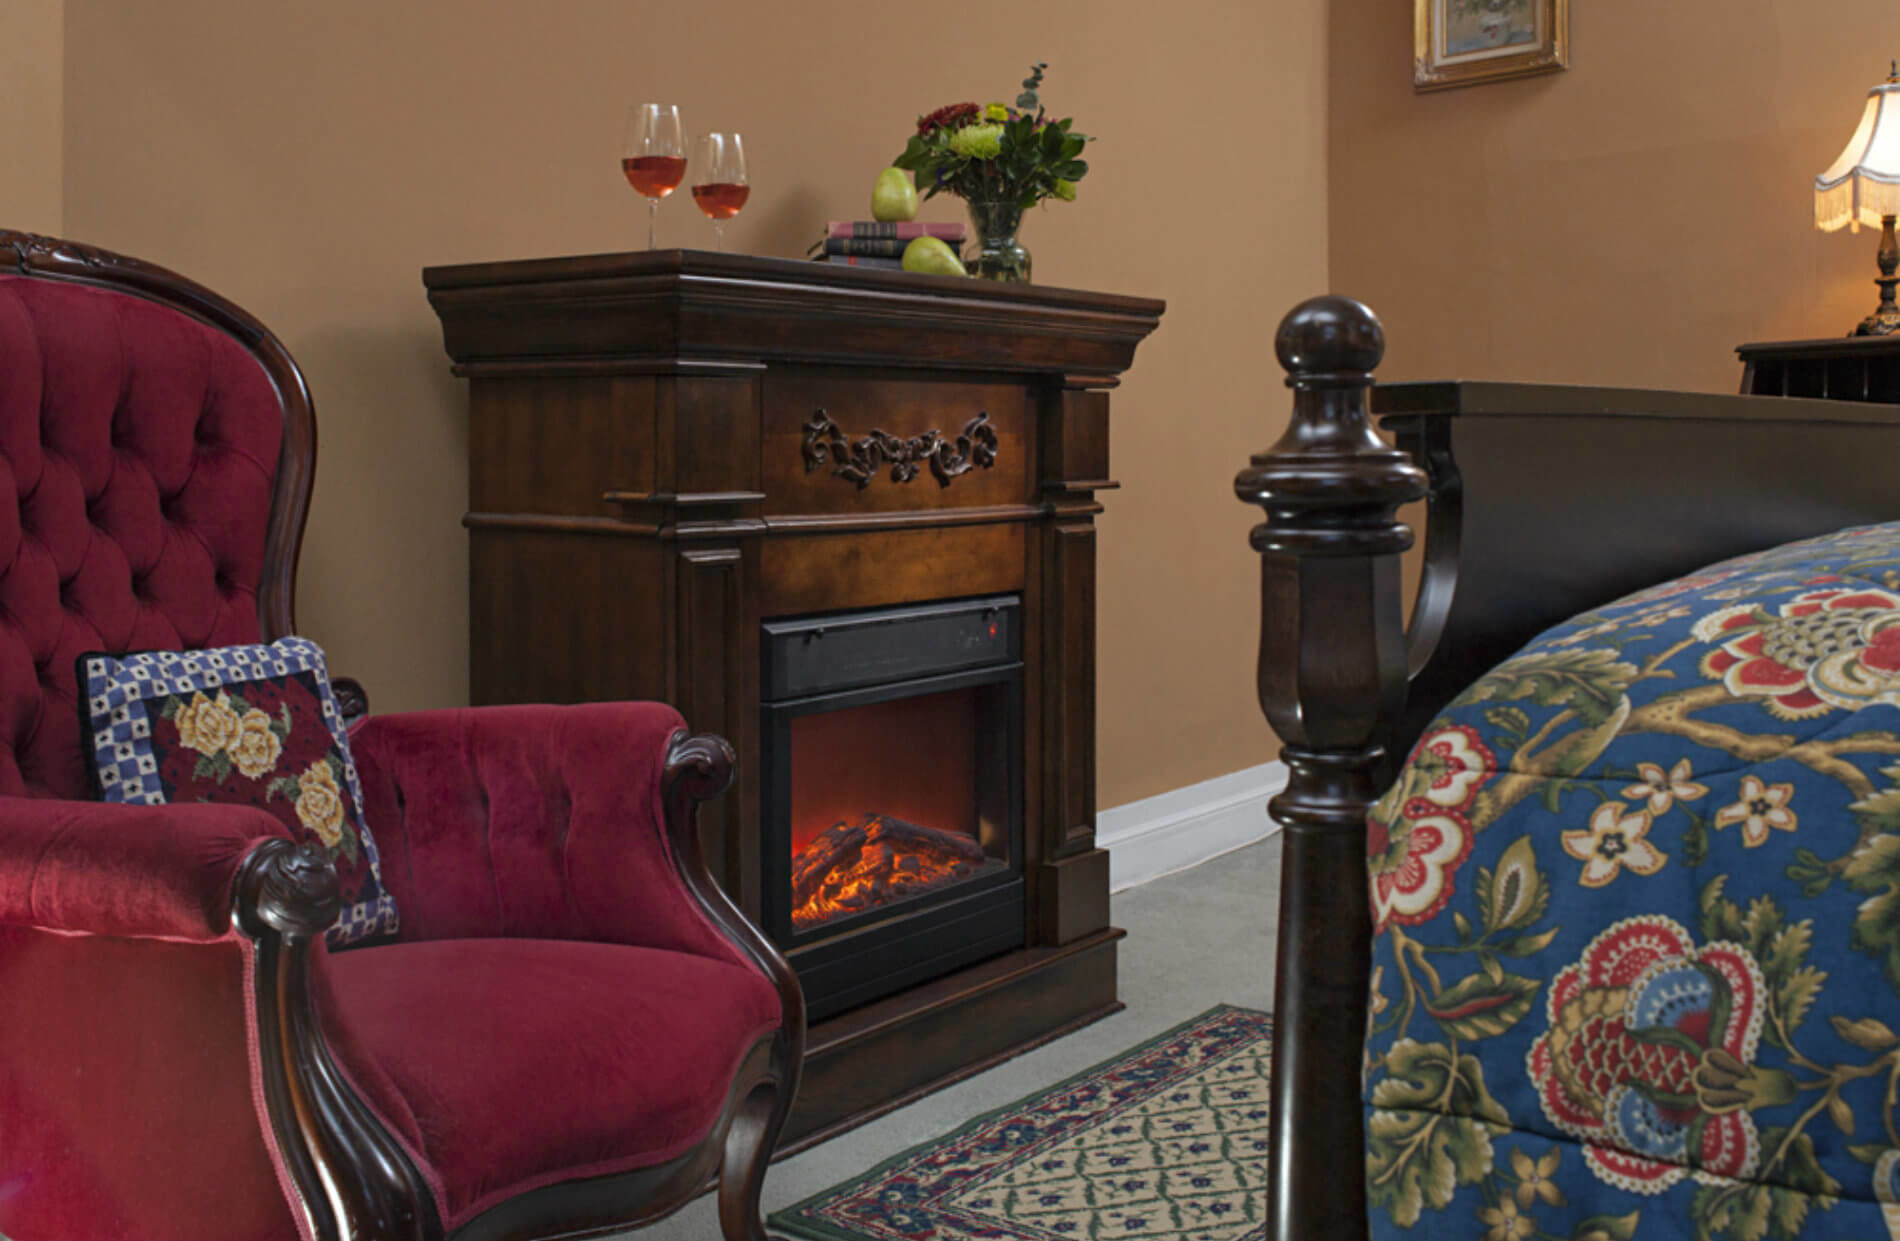 Wooden fireplace next to red wingback chair in tan walled bedroom